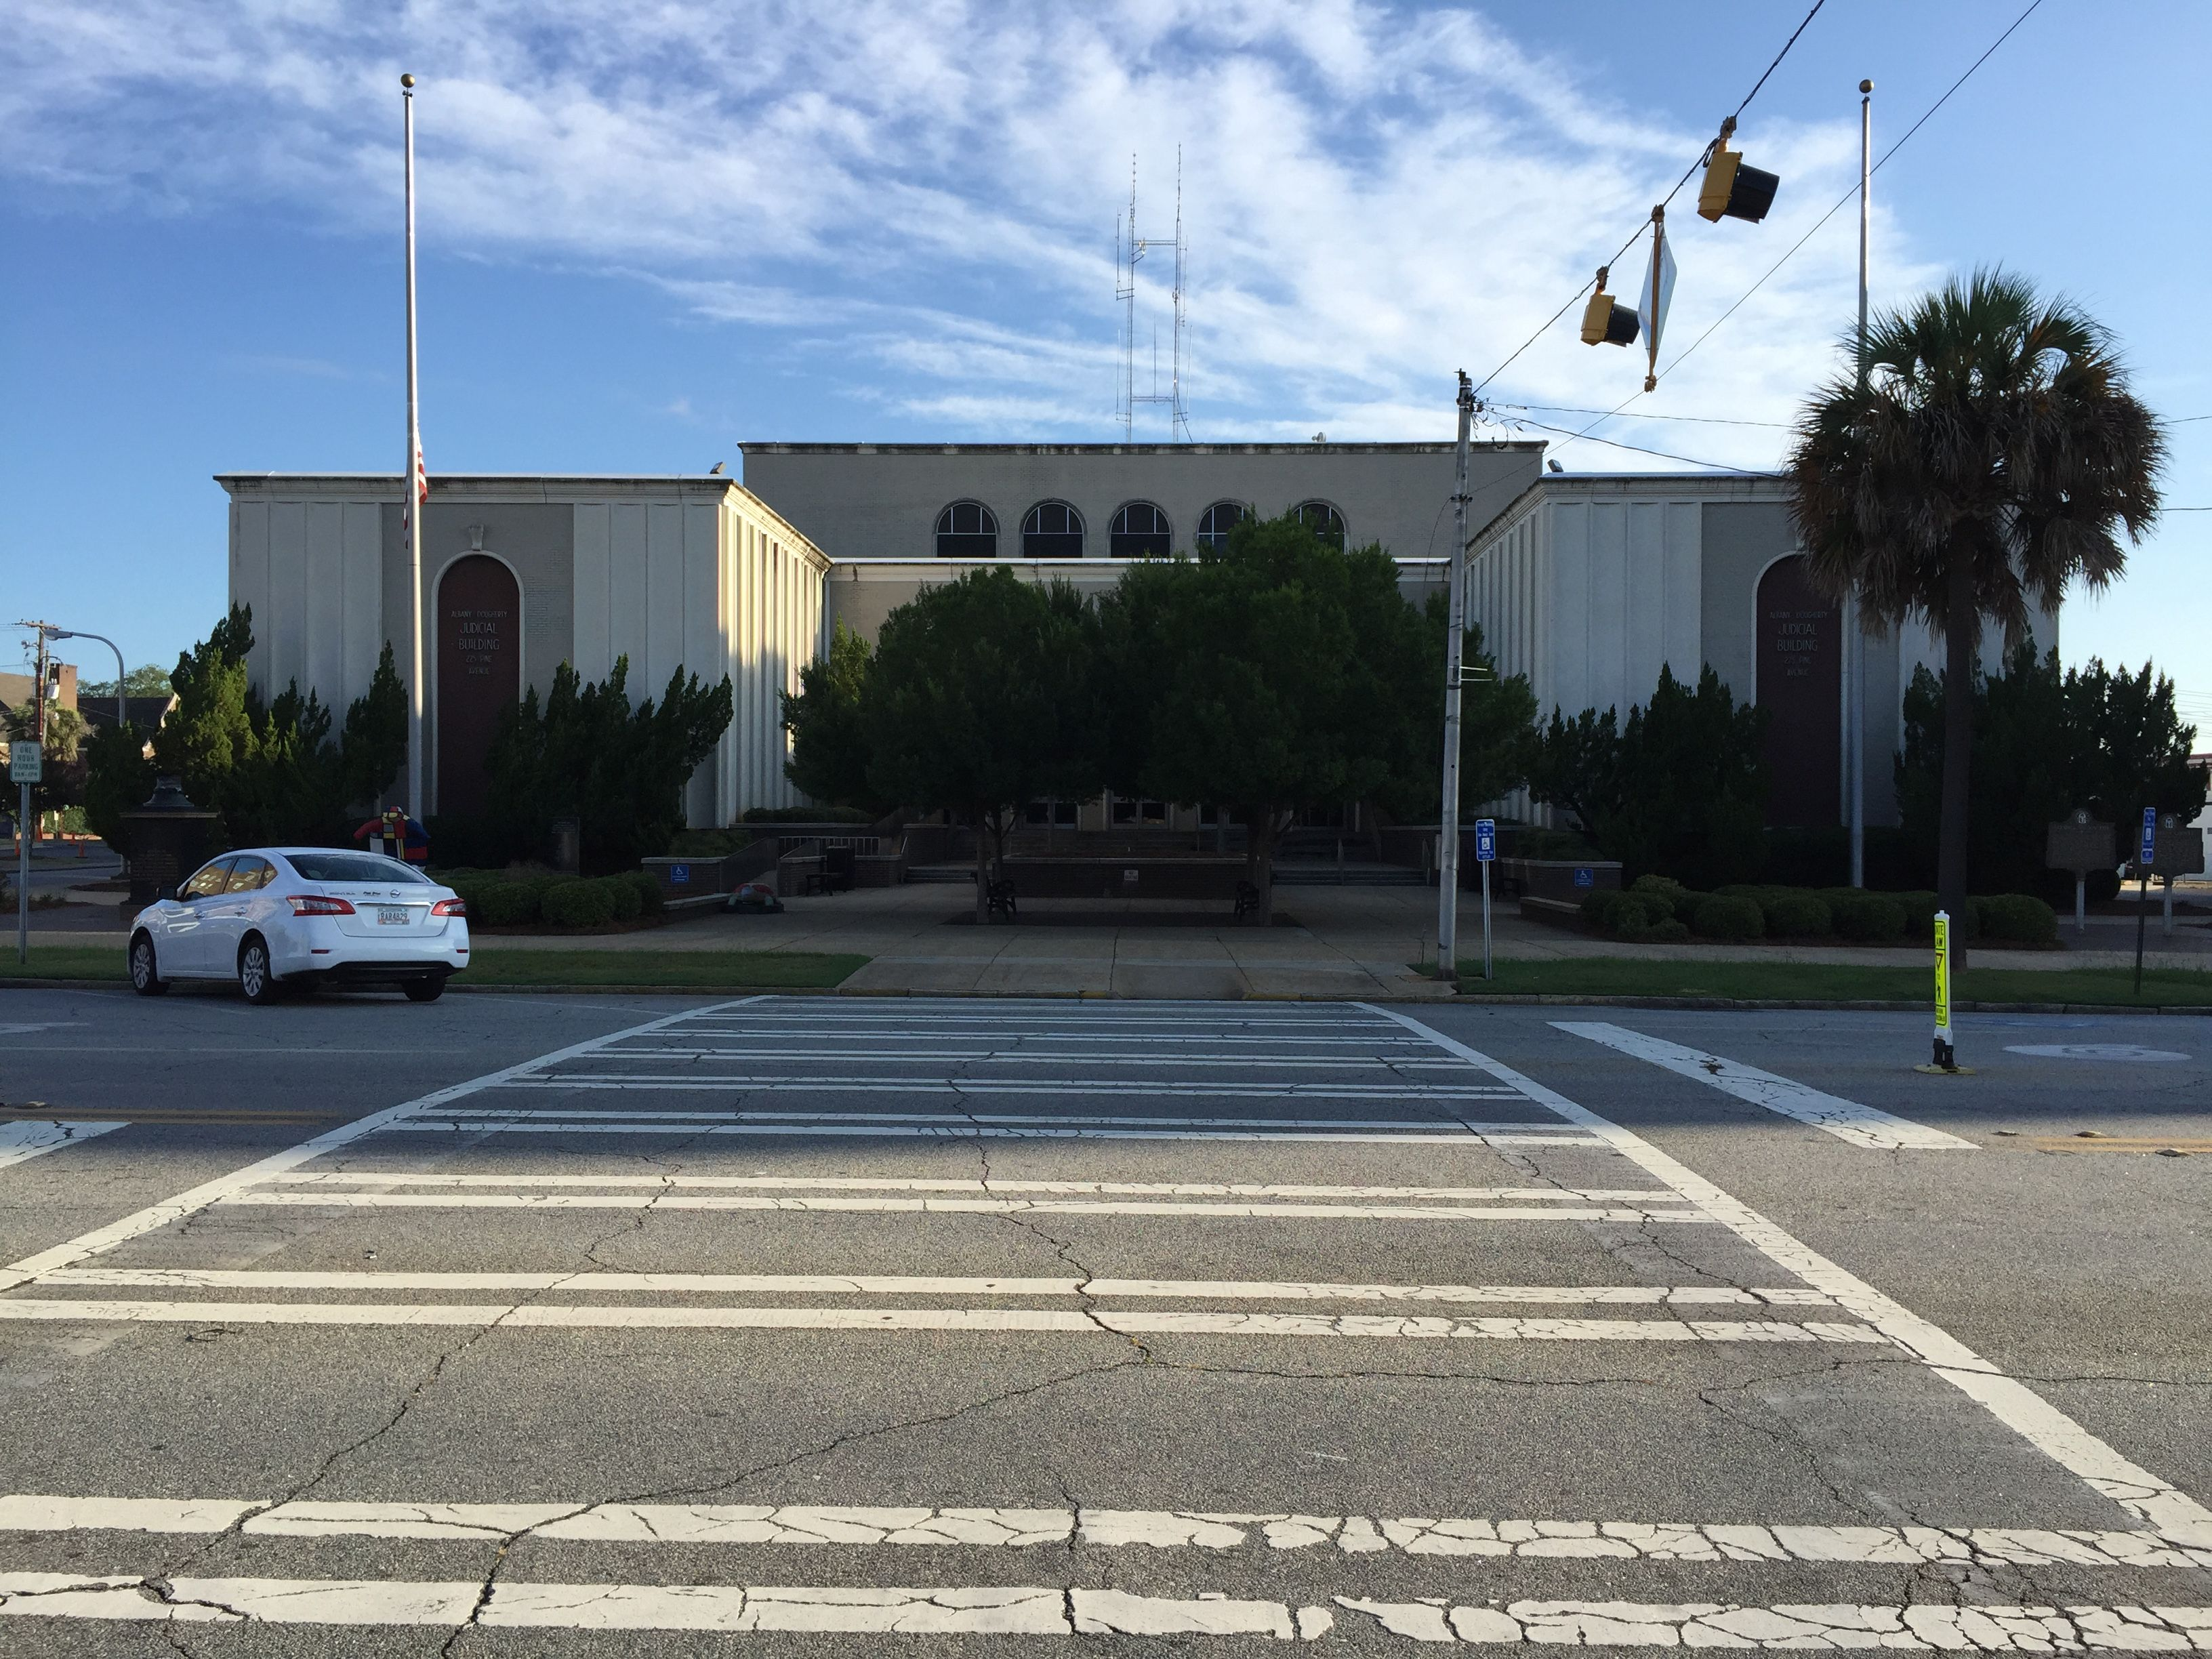 Dougherty County Courthouse in Albany, Georgia. Built 1968. Paul Chandler July 2016.